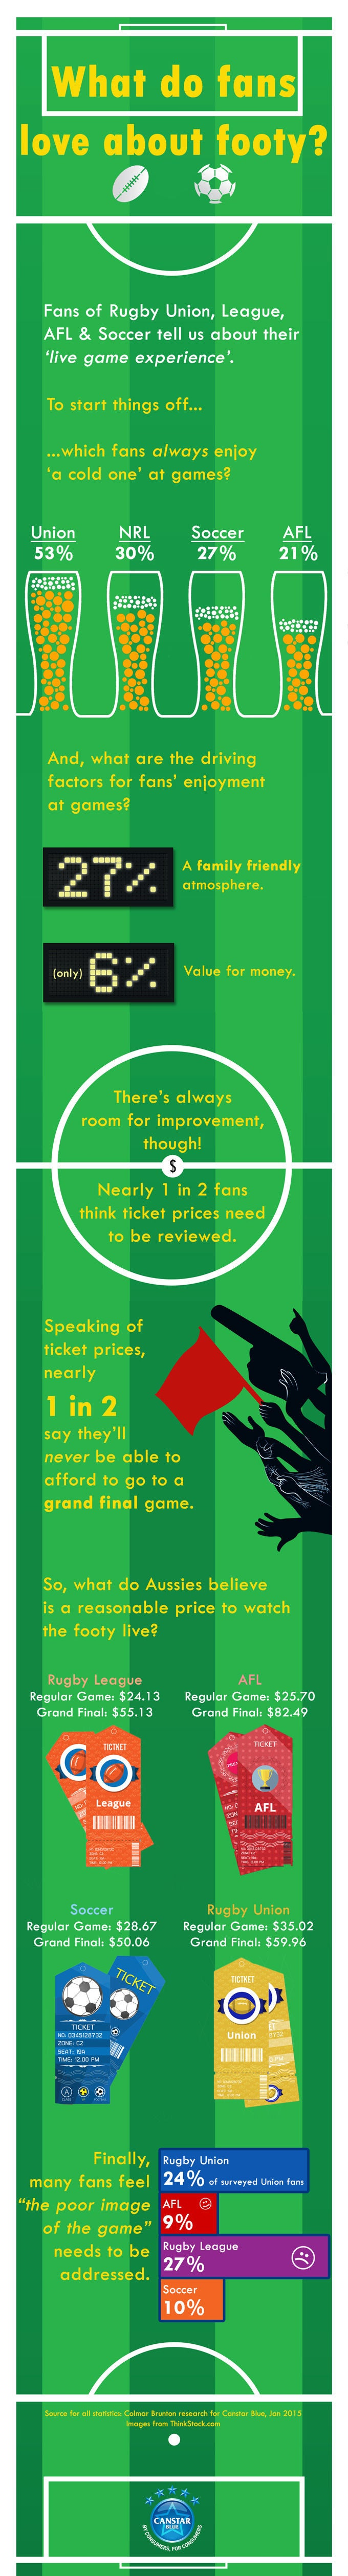 Football Research: Why fans love the game